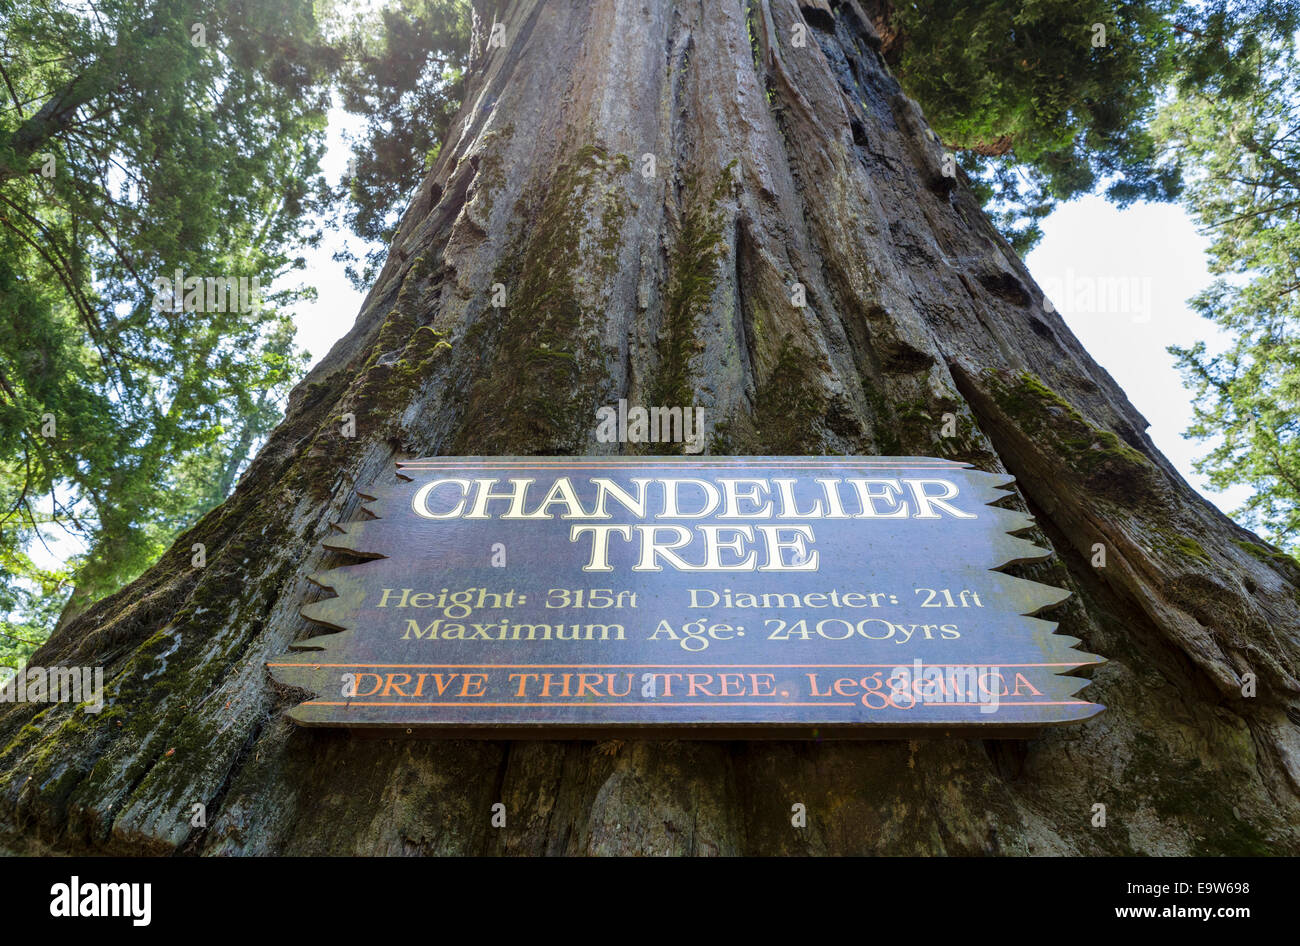 The 2400 year old chandelier drive thru redwood tree in leggett the 2400 year old chandelier drive thru redwood tree in leggett mendocino county northern california usa arubaitofo Images